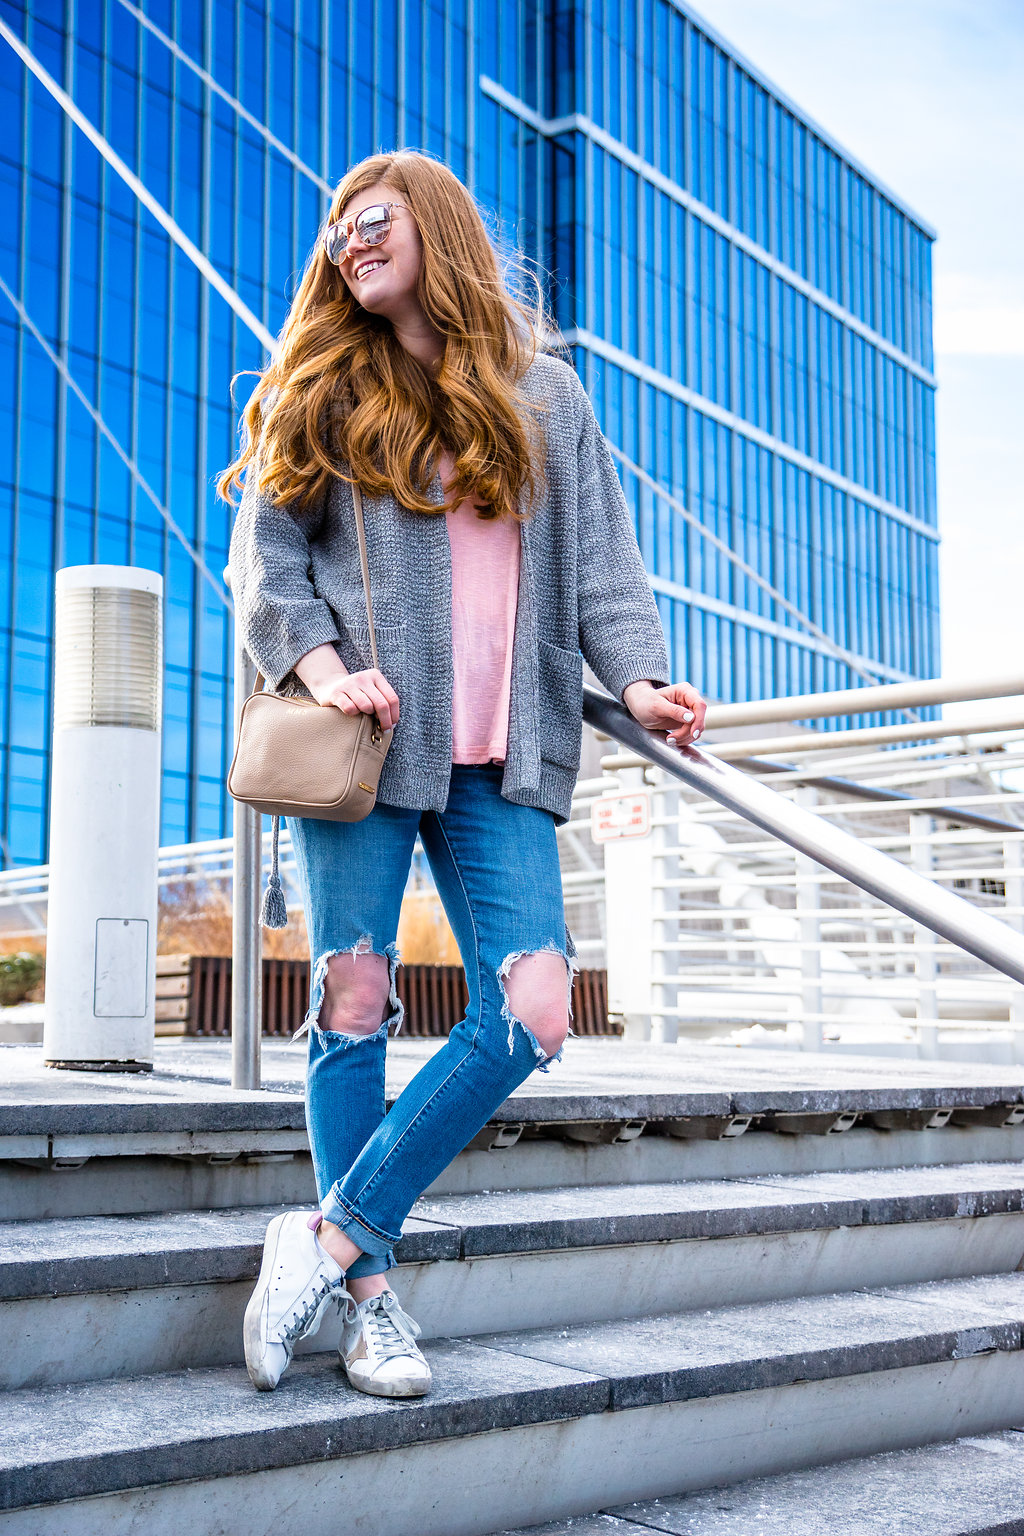 Lifestyle blogger Mollie Sheperson shares a laid back look in Denver